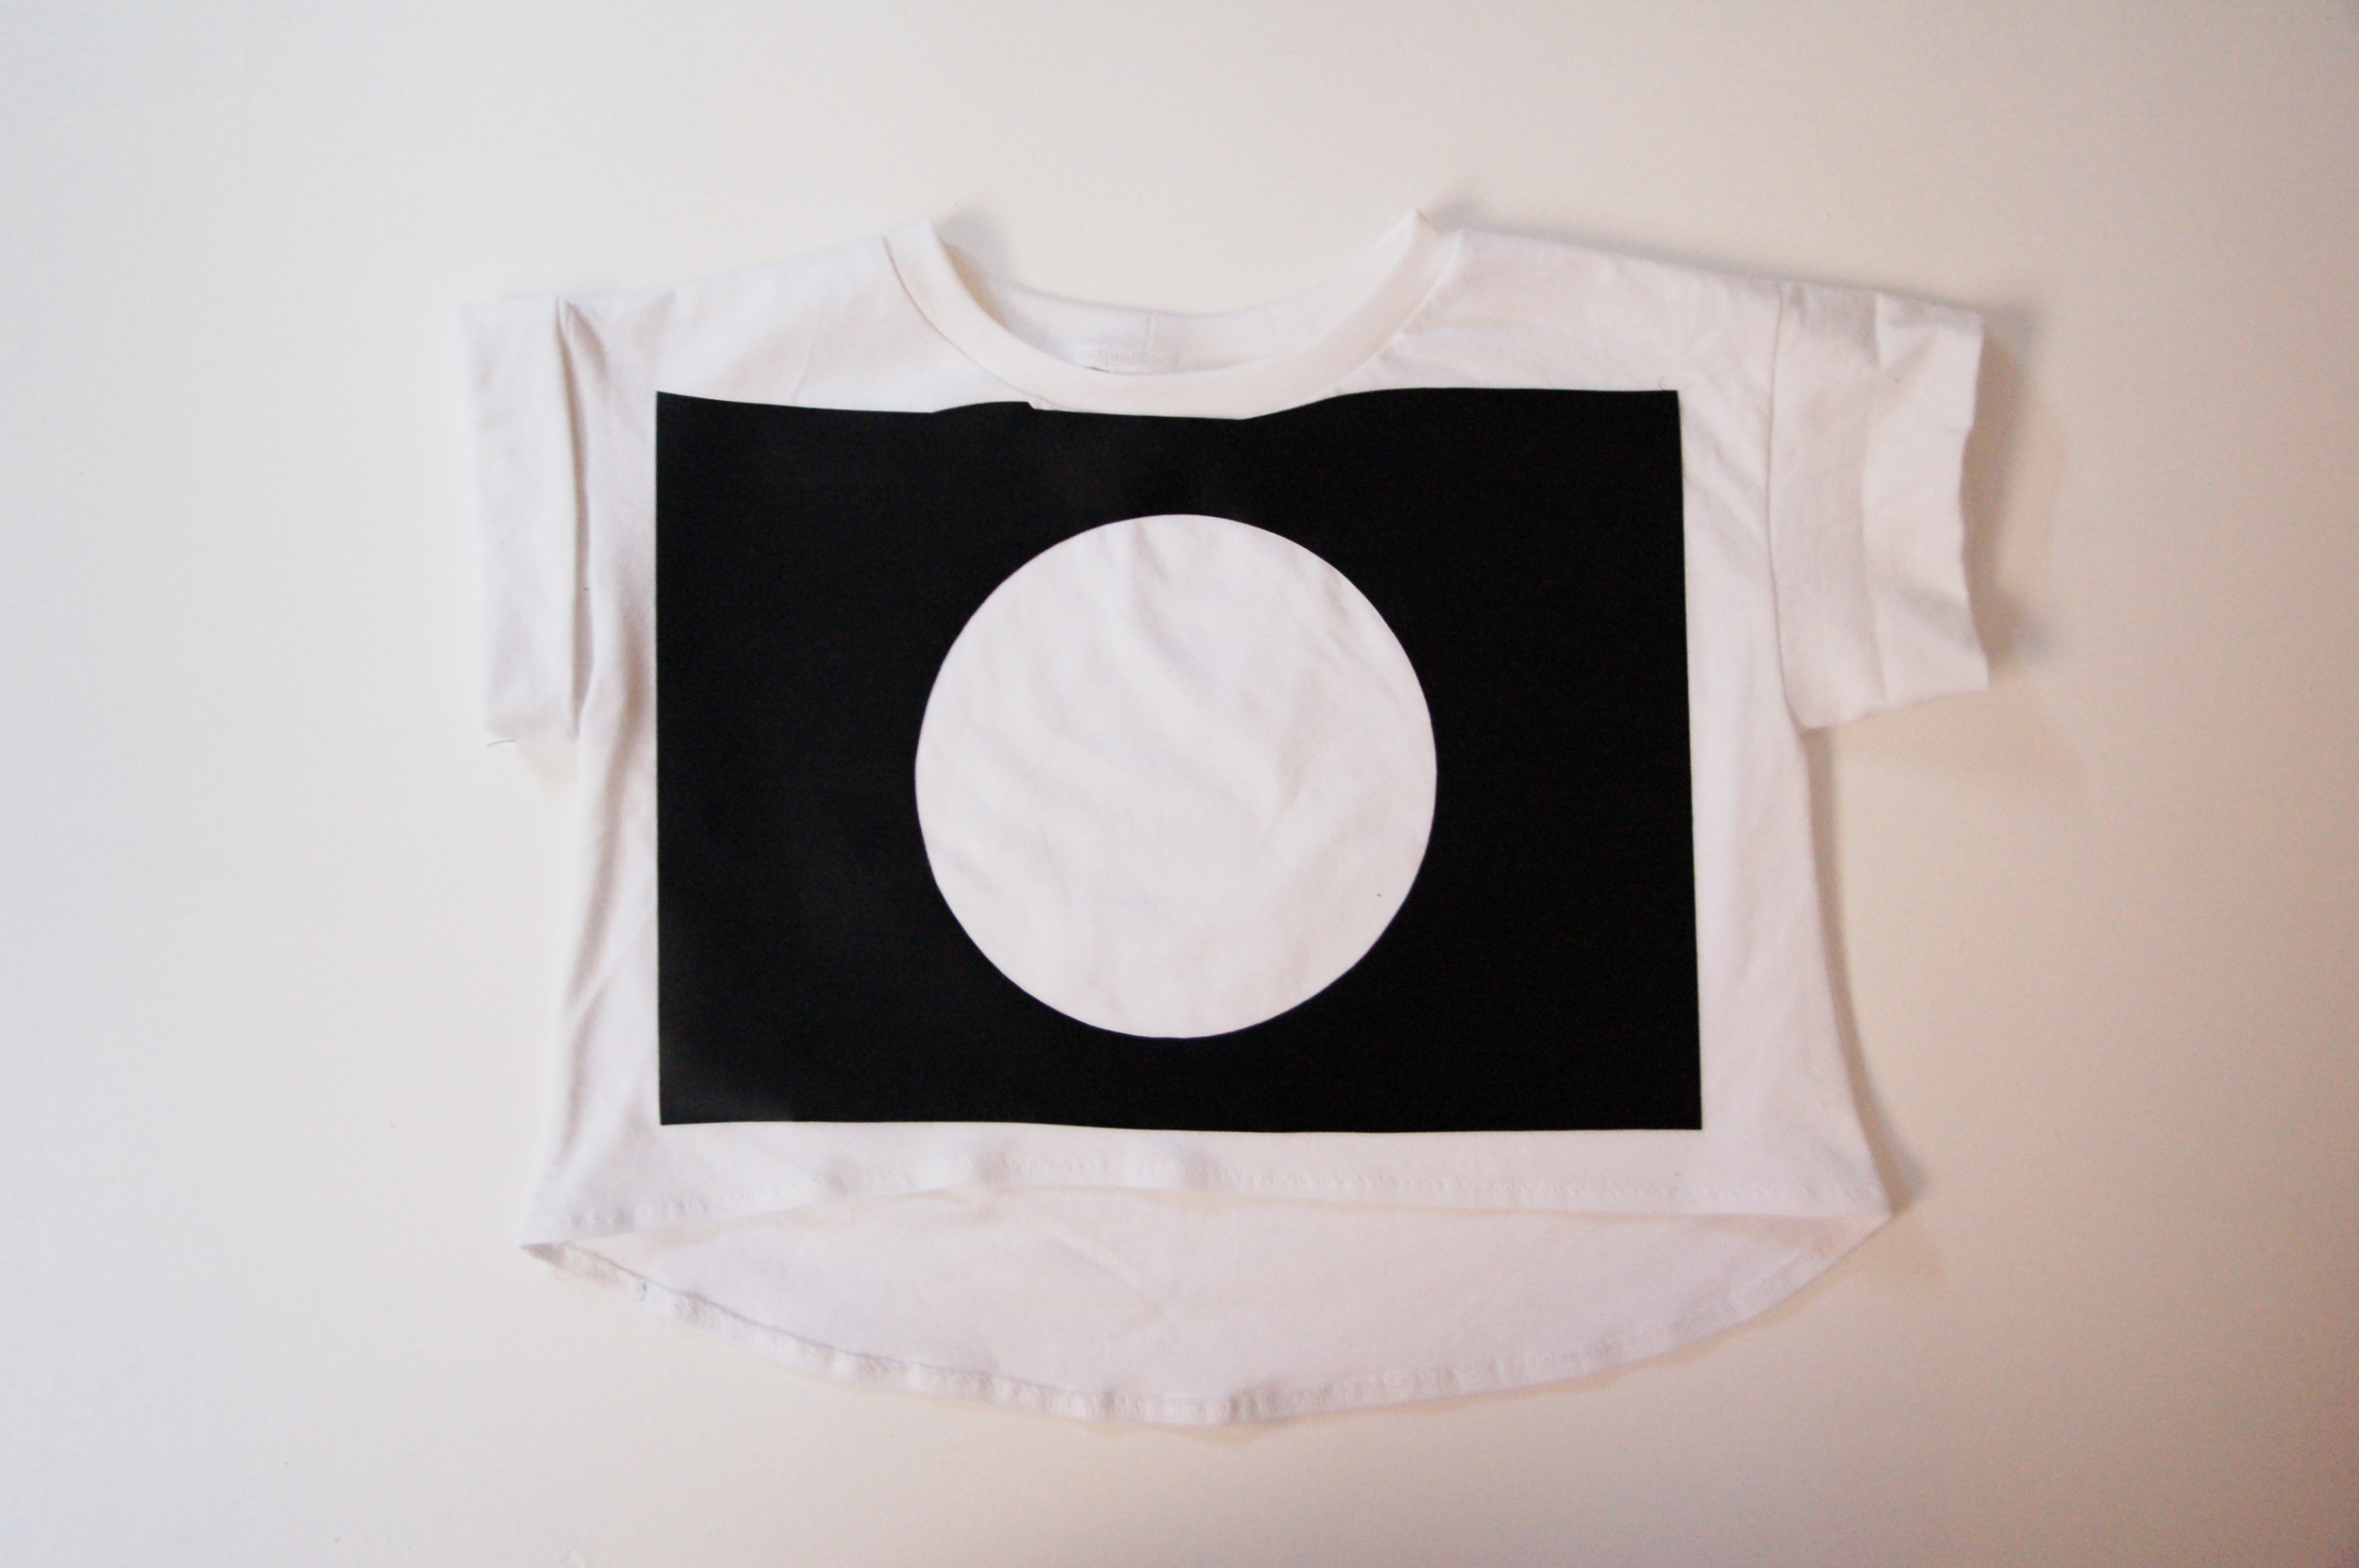 Apply the template to the t-shirt, by peeling of the backing and sticking if using vinyl or ironing if using freezer paper.